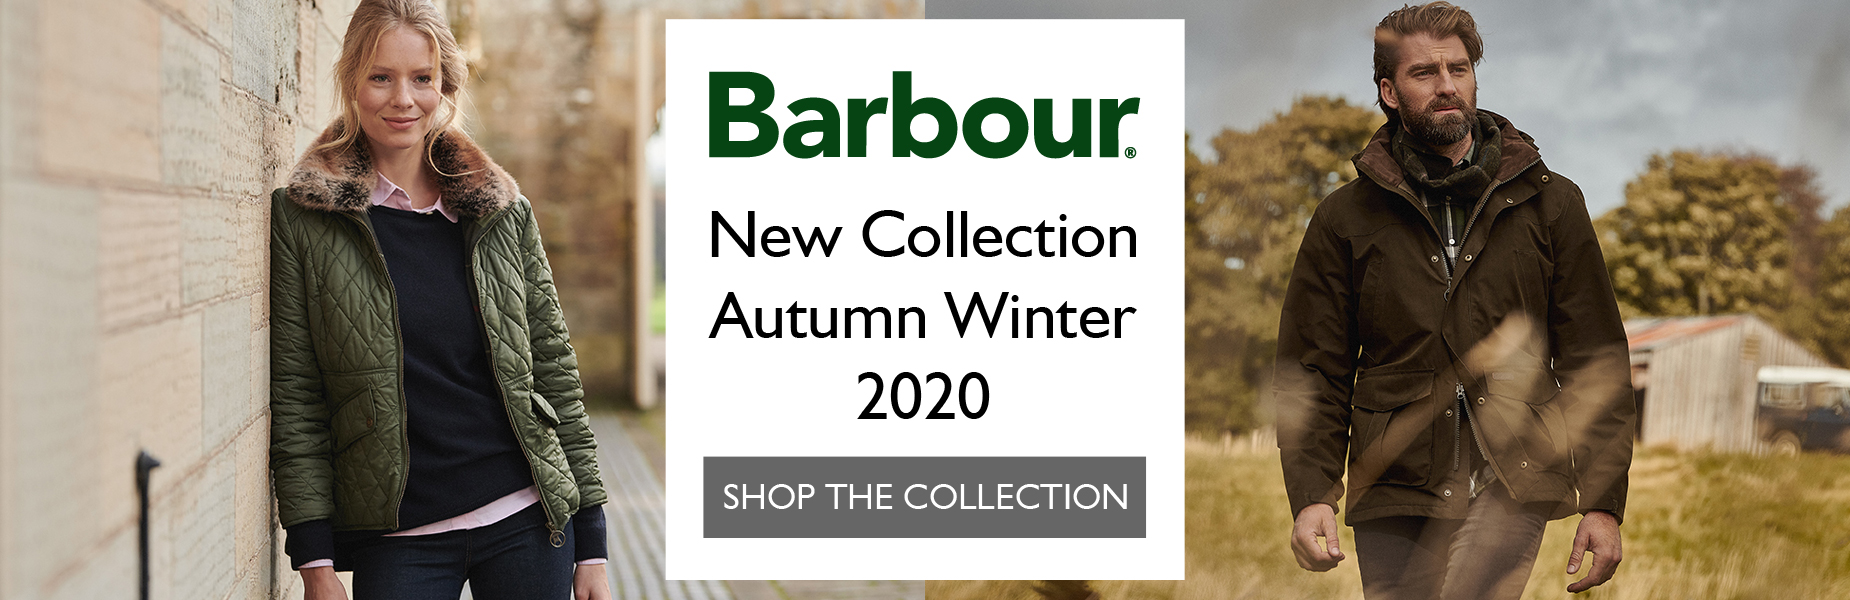 Barbour New Collection AW20 - Shop Now